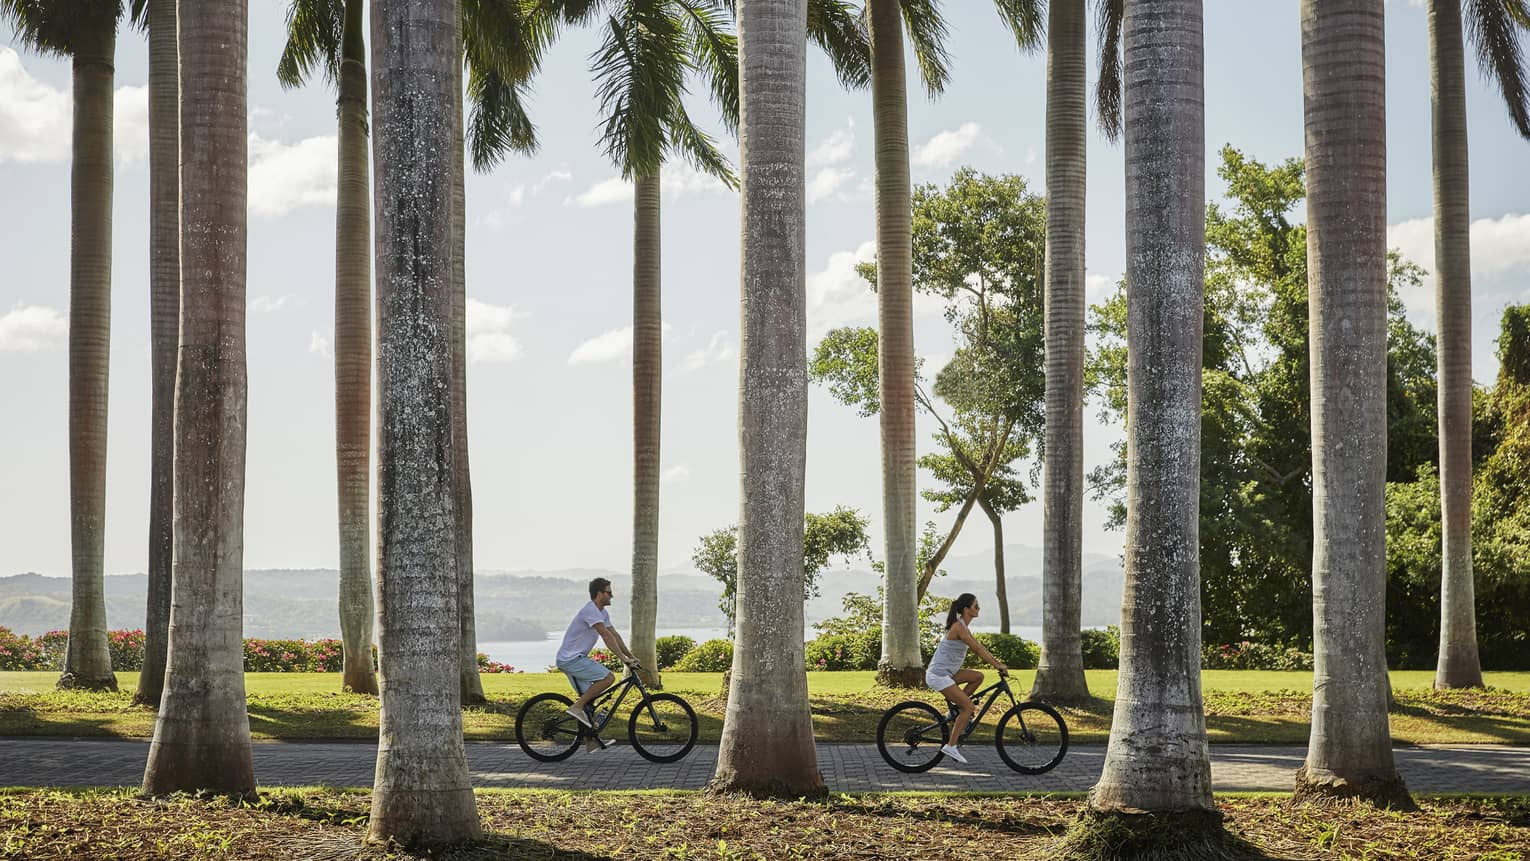 Man and woman cycle down path lined with tall palm tree trunks, past green lawn and garden